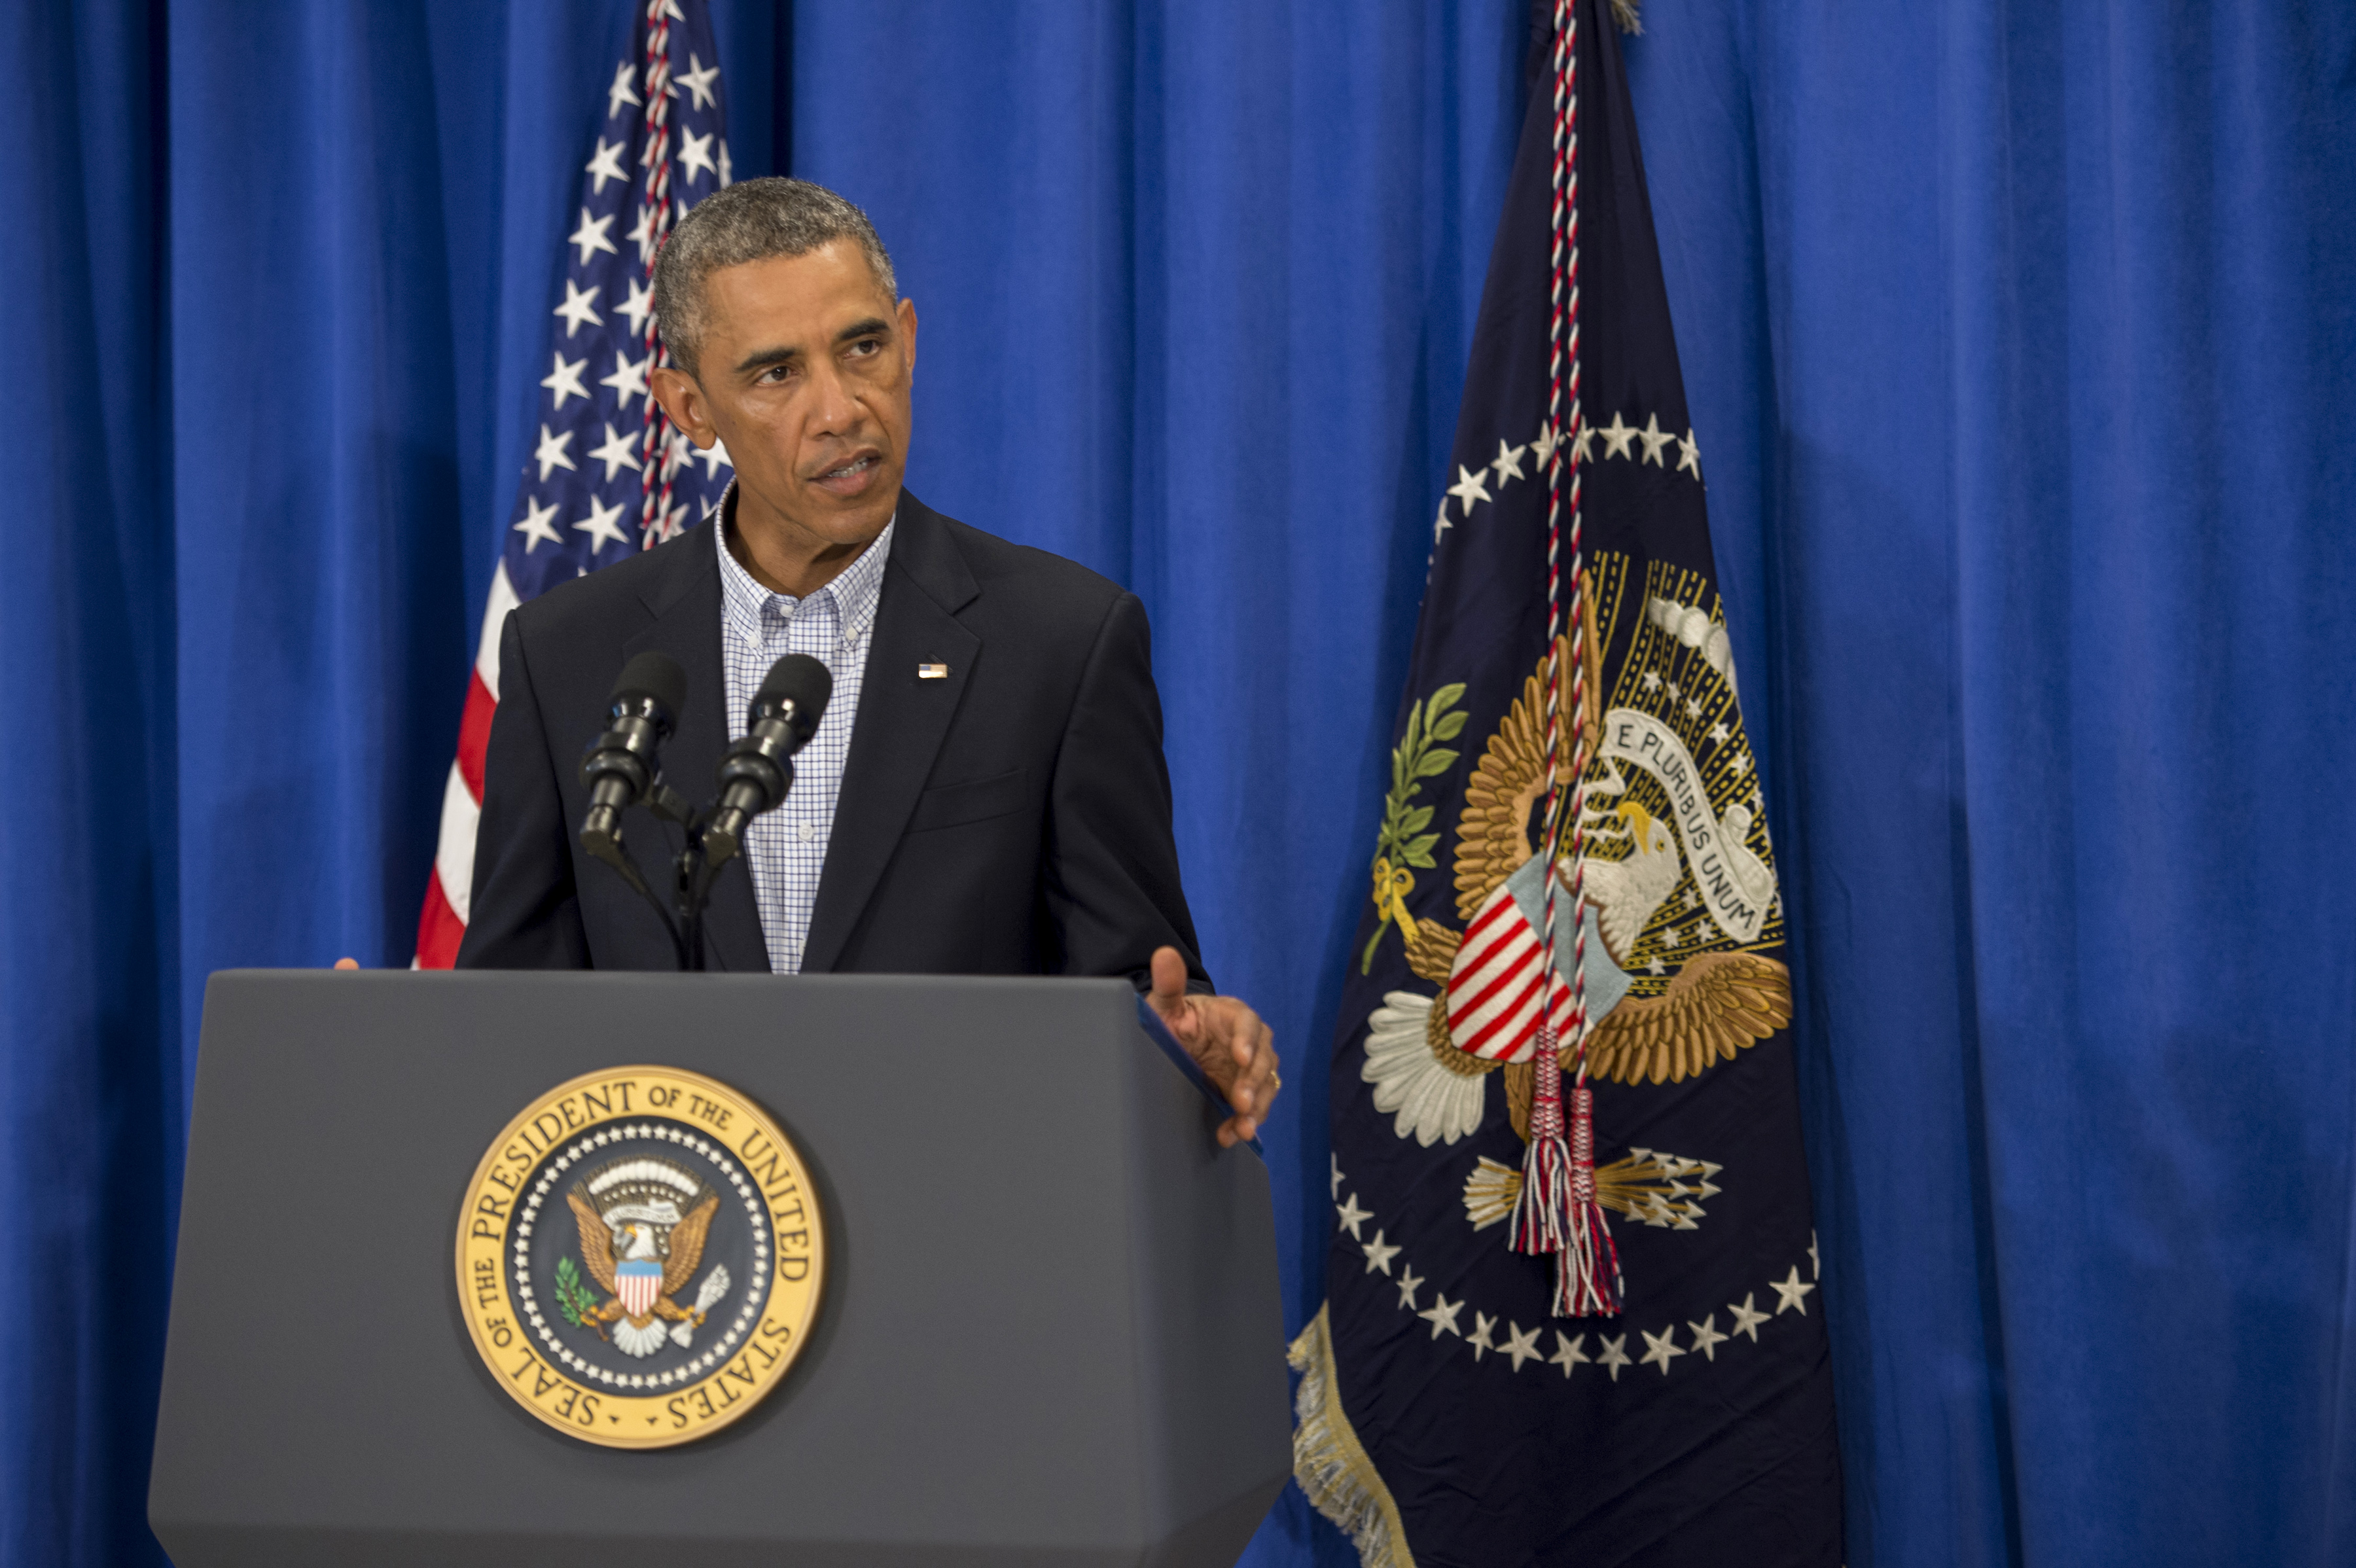 President Barack Obama speaks about the unrest in Ferguson, Mo. while on vacation in Edgartown, Mass. on Aug. 14, 2014.